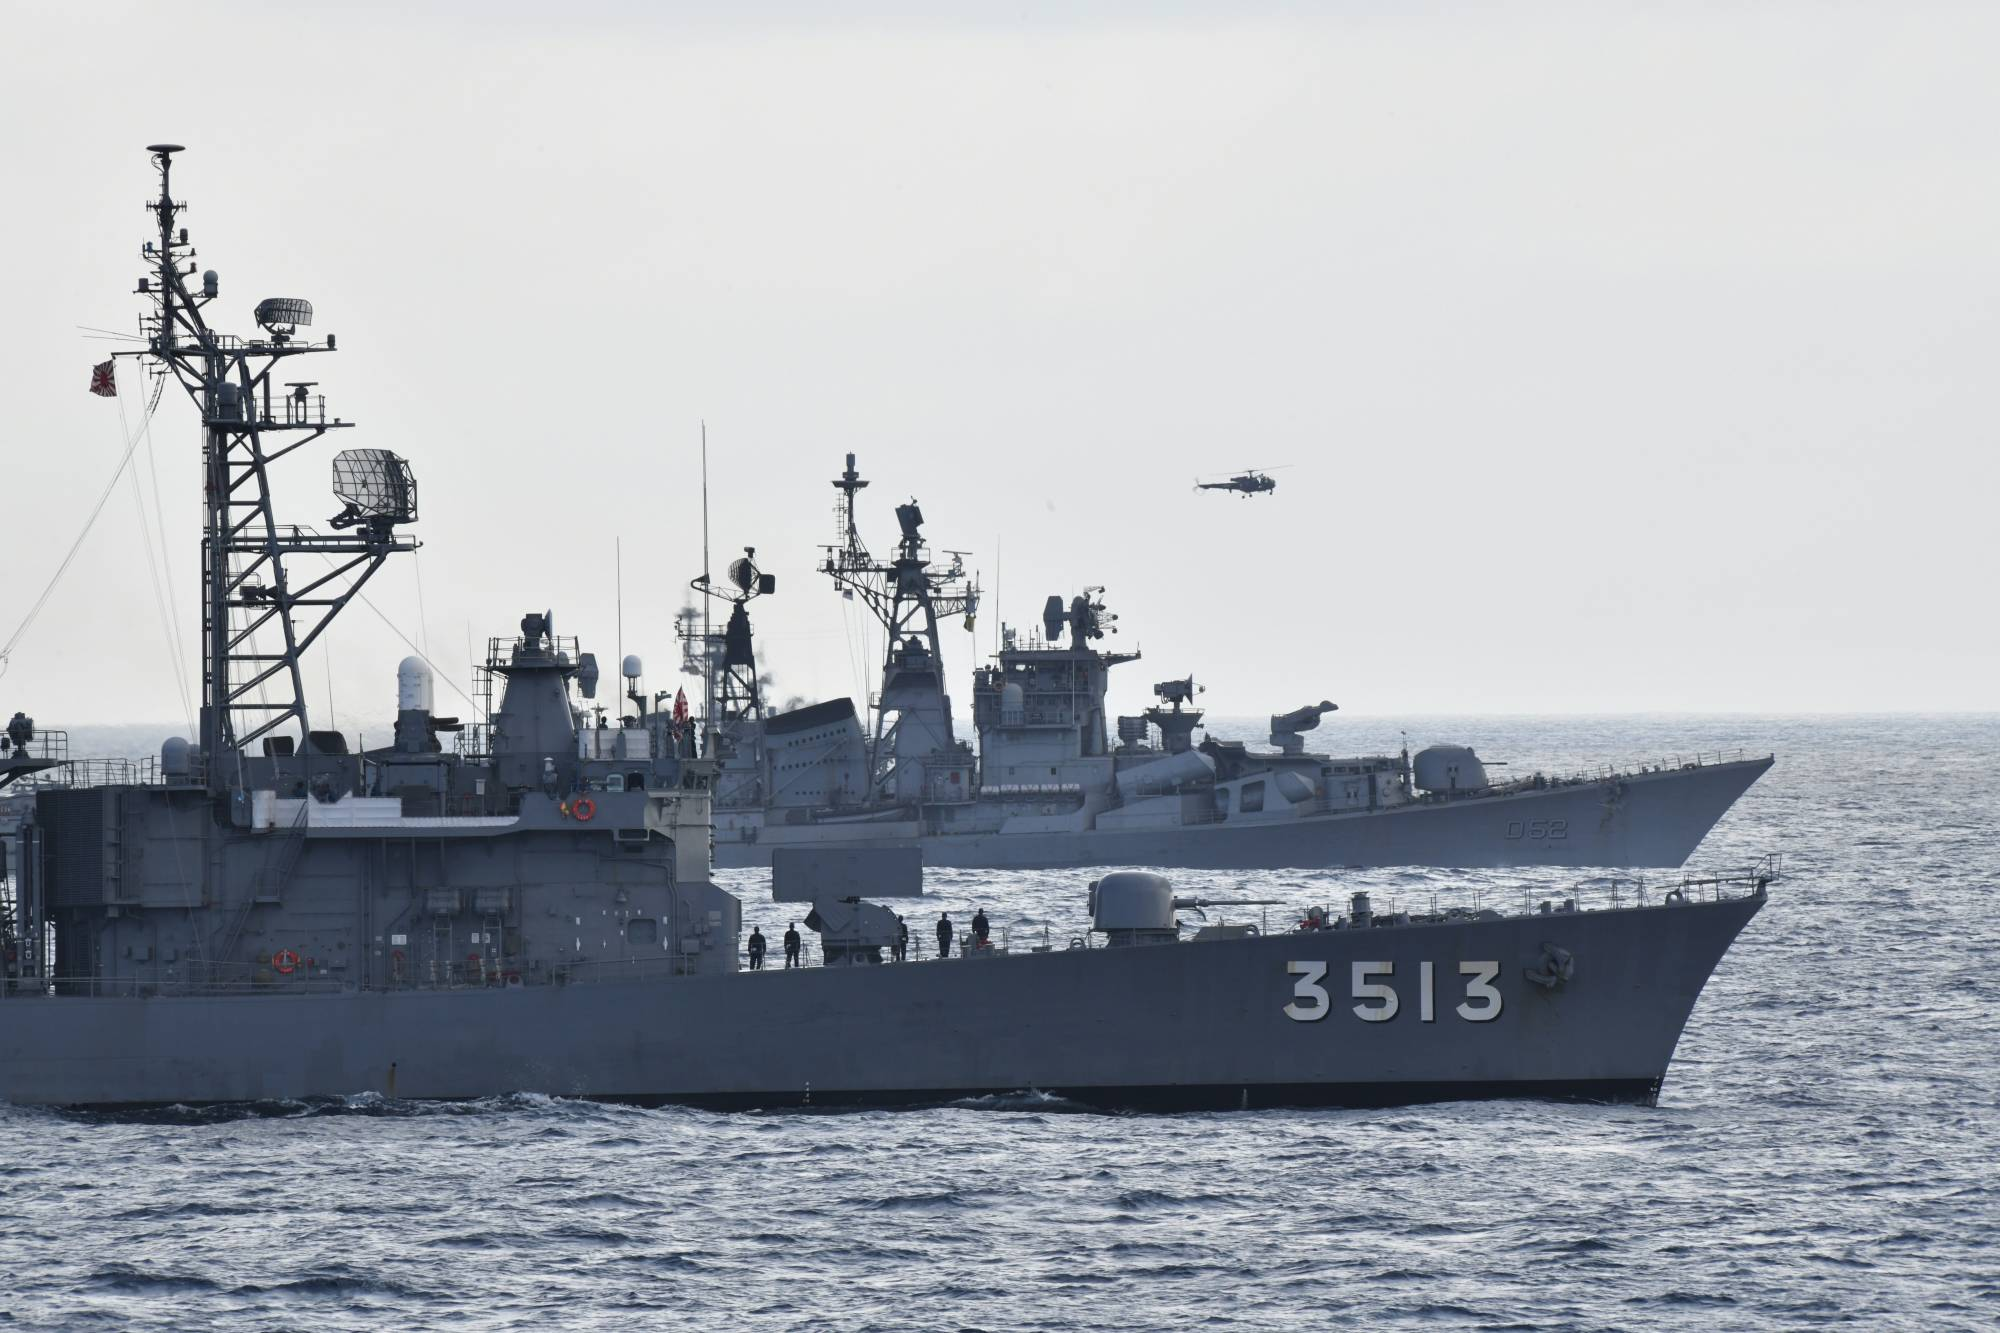 India and Japan Warships Conduct Naval Training Exercise Amid China Row